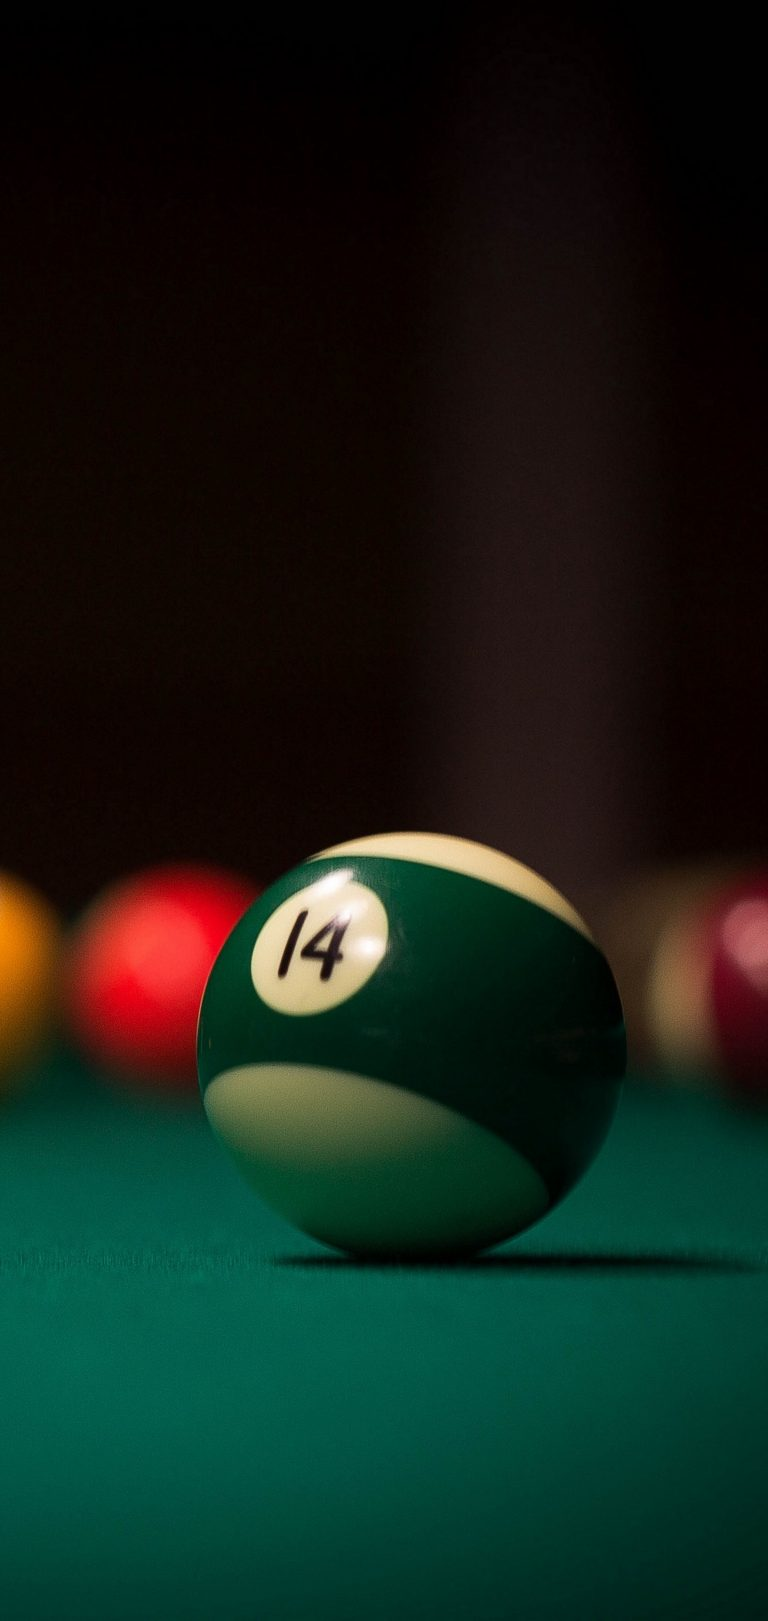 Billiards Ball Cue Wallpaper 1440x3040 768x1621